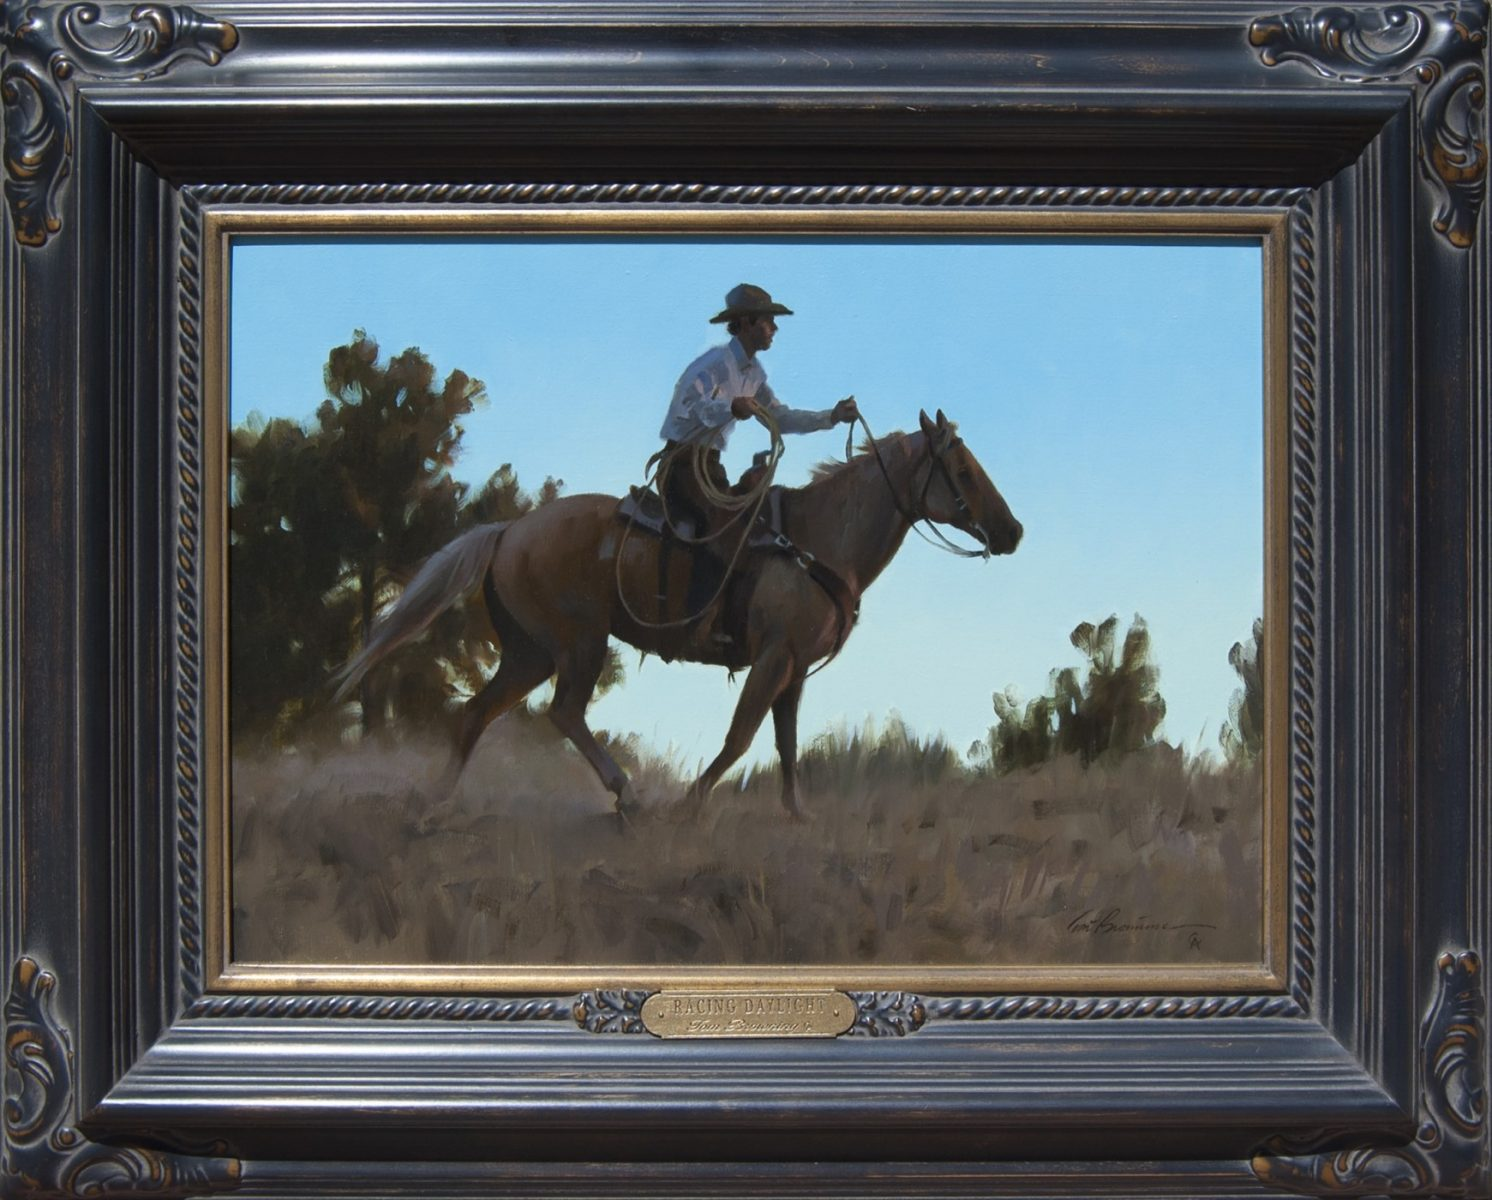 Racing Daylight cowboy painting by Tom Browning